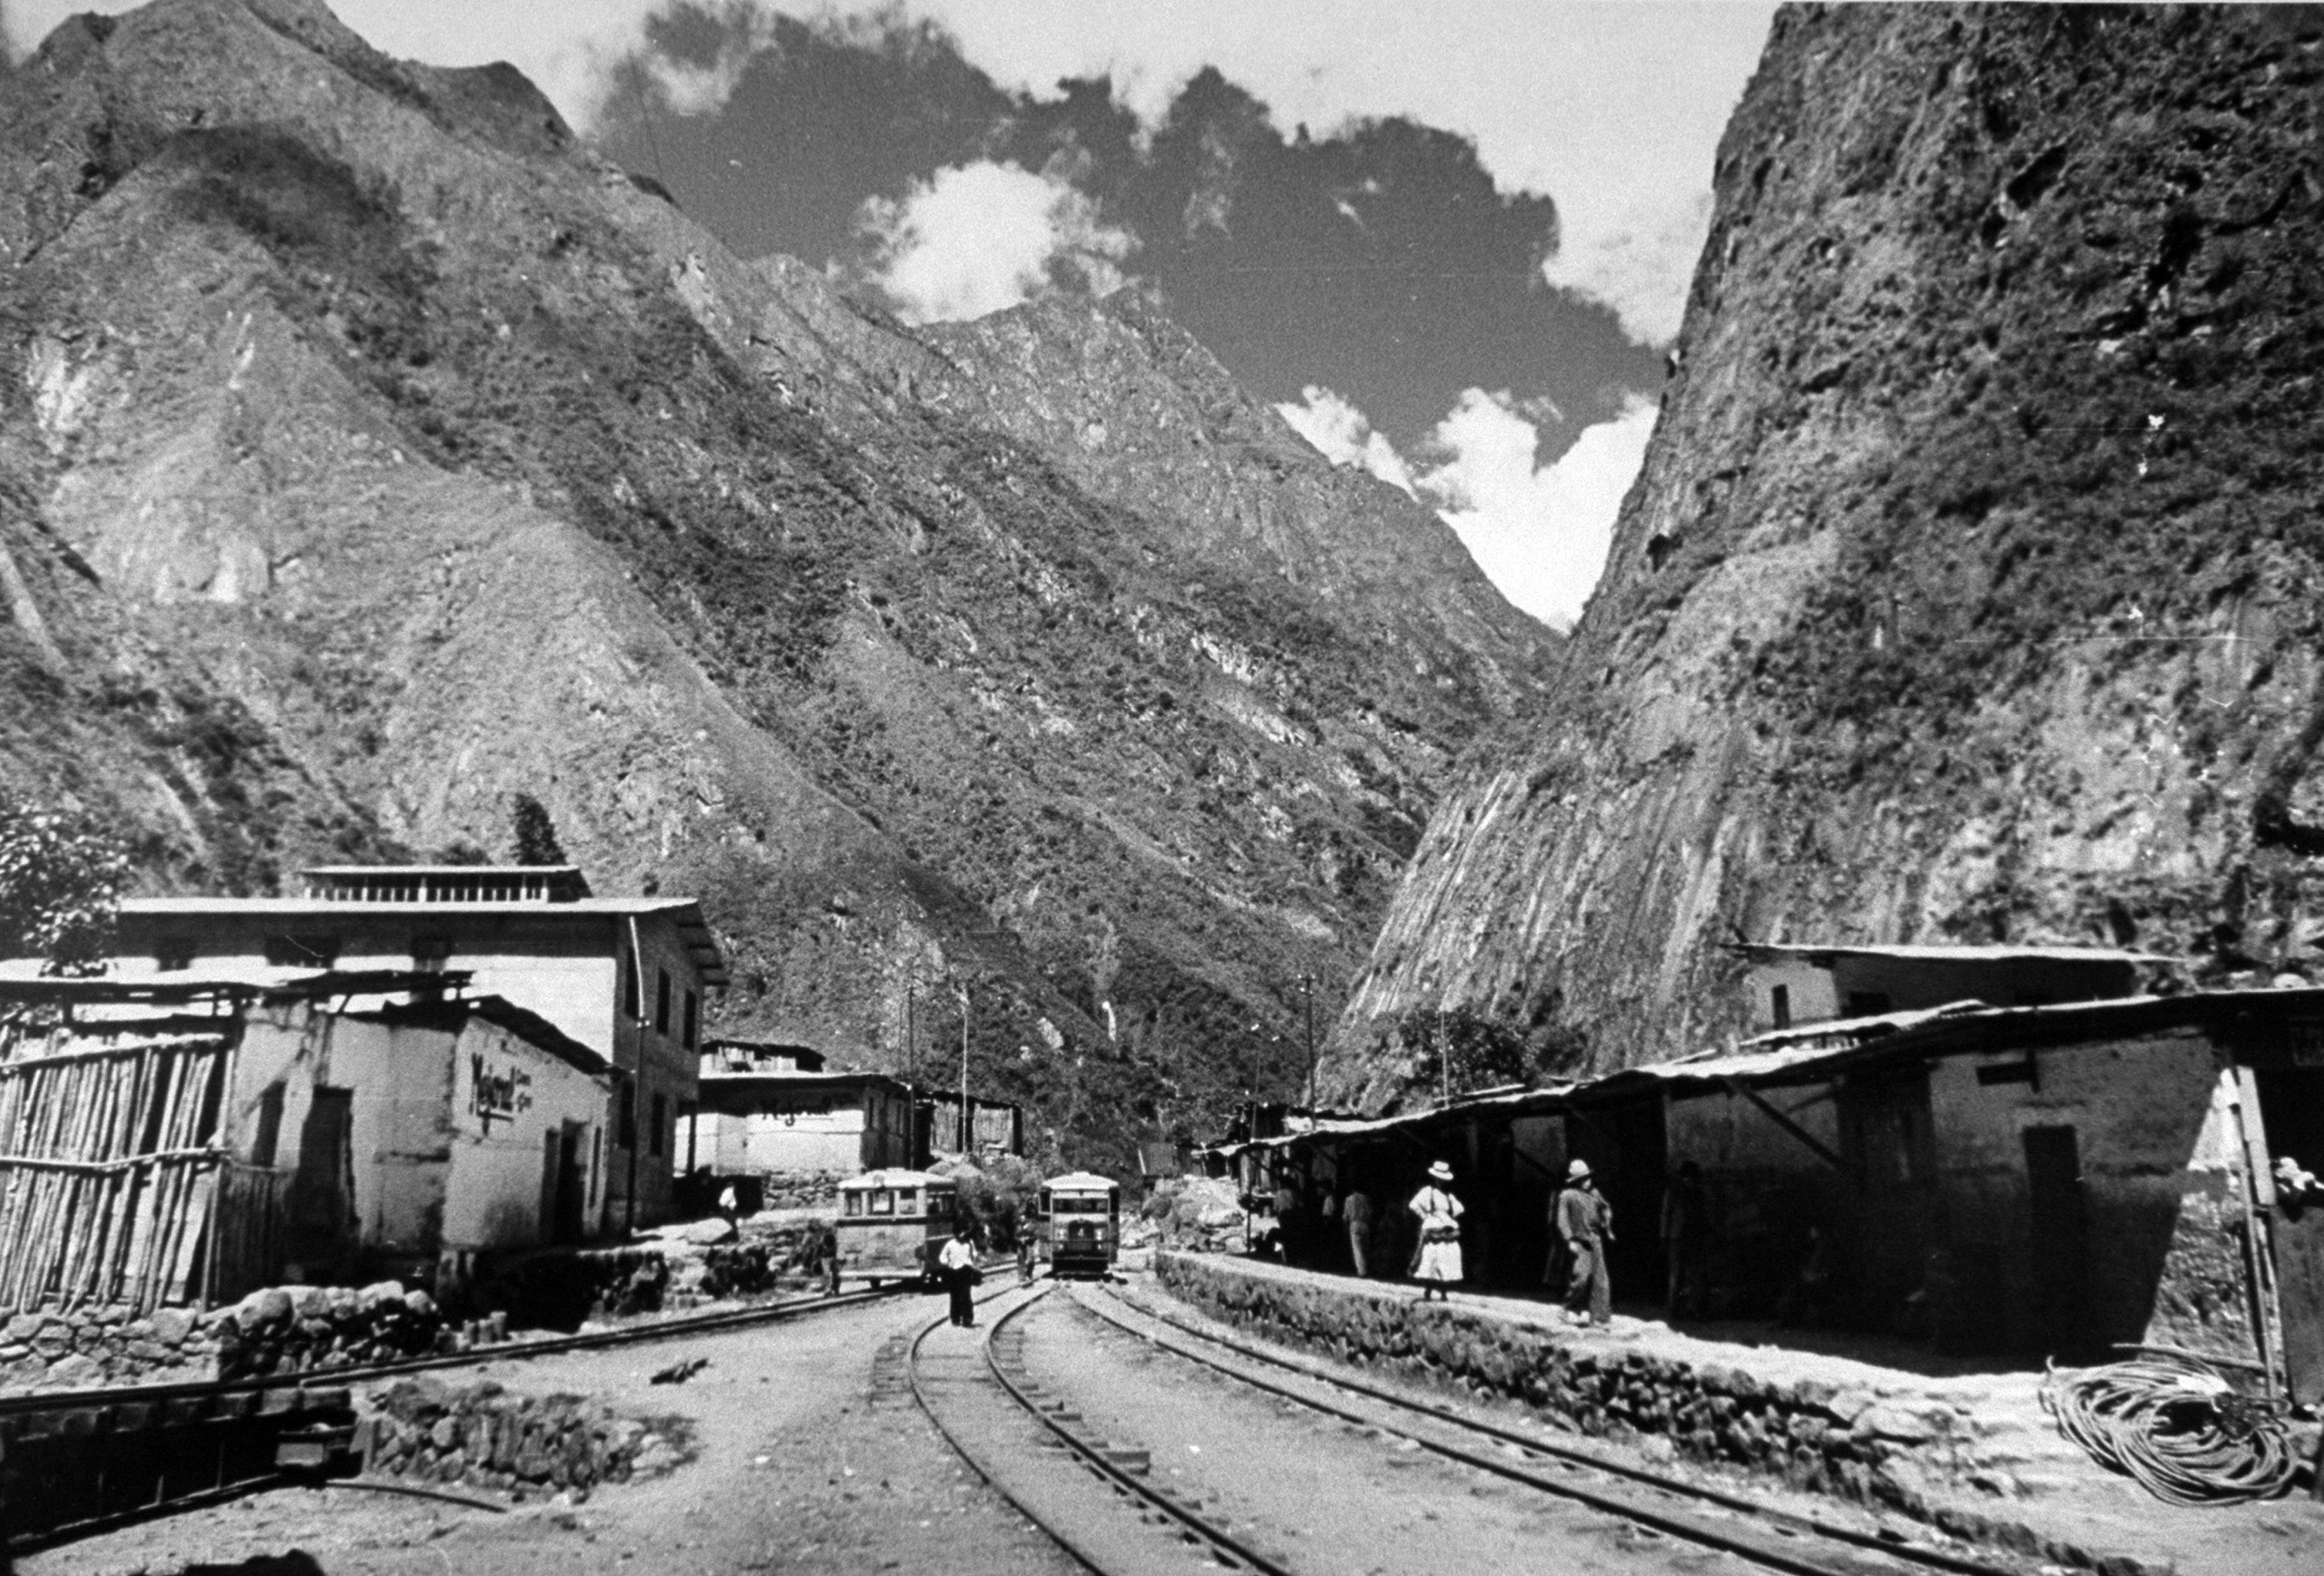 The train arriving in the village of Machu Picchu, where the railroad ends, 1945.